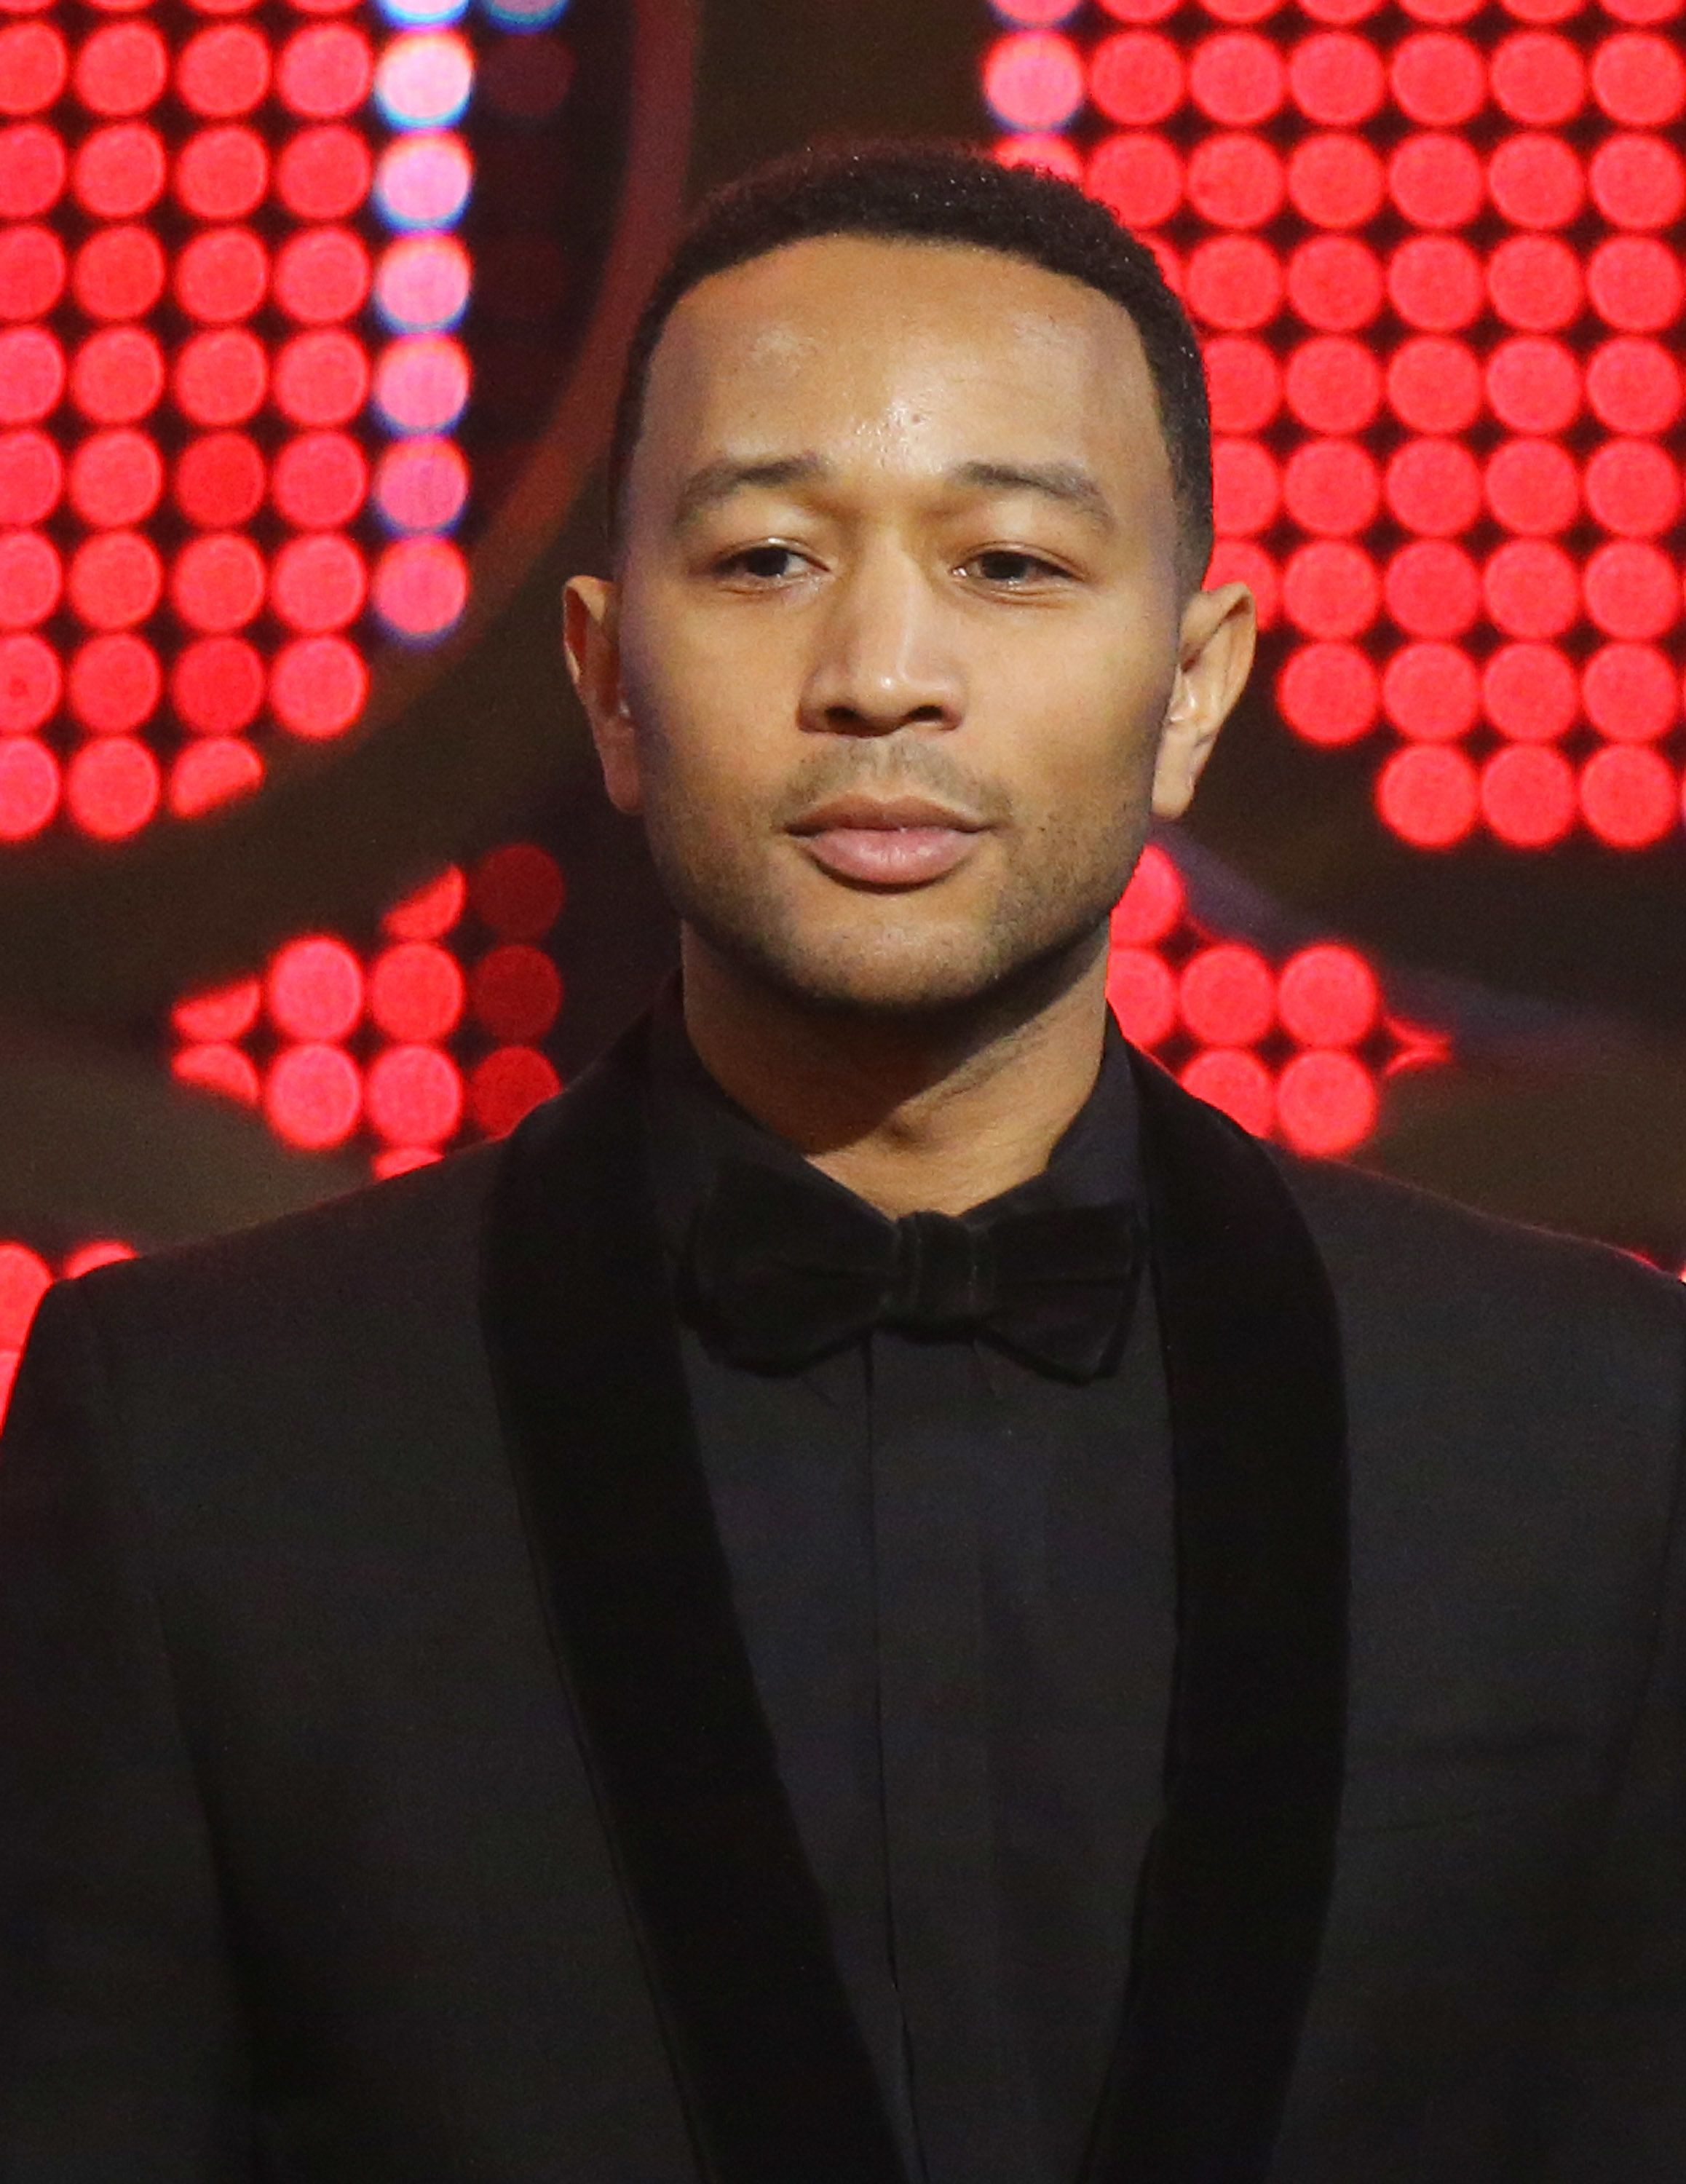 CULVER CITY, CA - JUNE 04:  John Legend performs onstage during the Spike TV's Guys Choice 2016 held at Sony Pictures Studios on June 4, 2016 in Culver City, California.  (Photo by Michael Tran/WireImage)